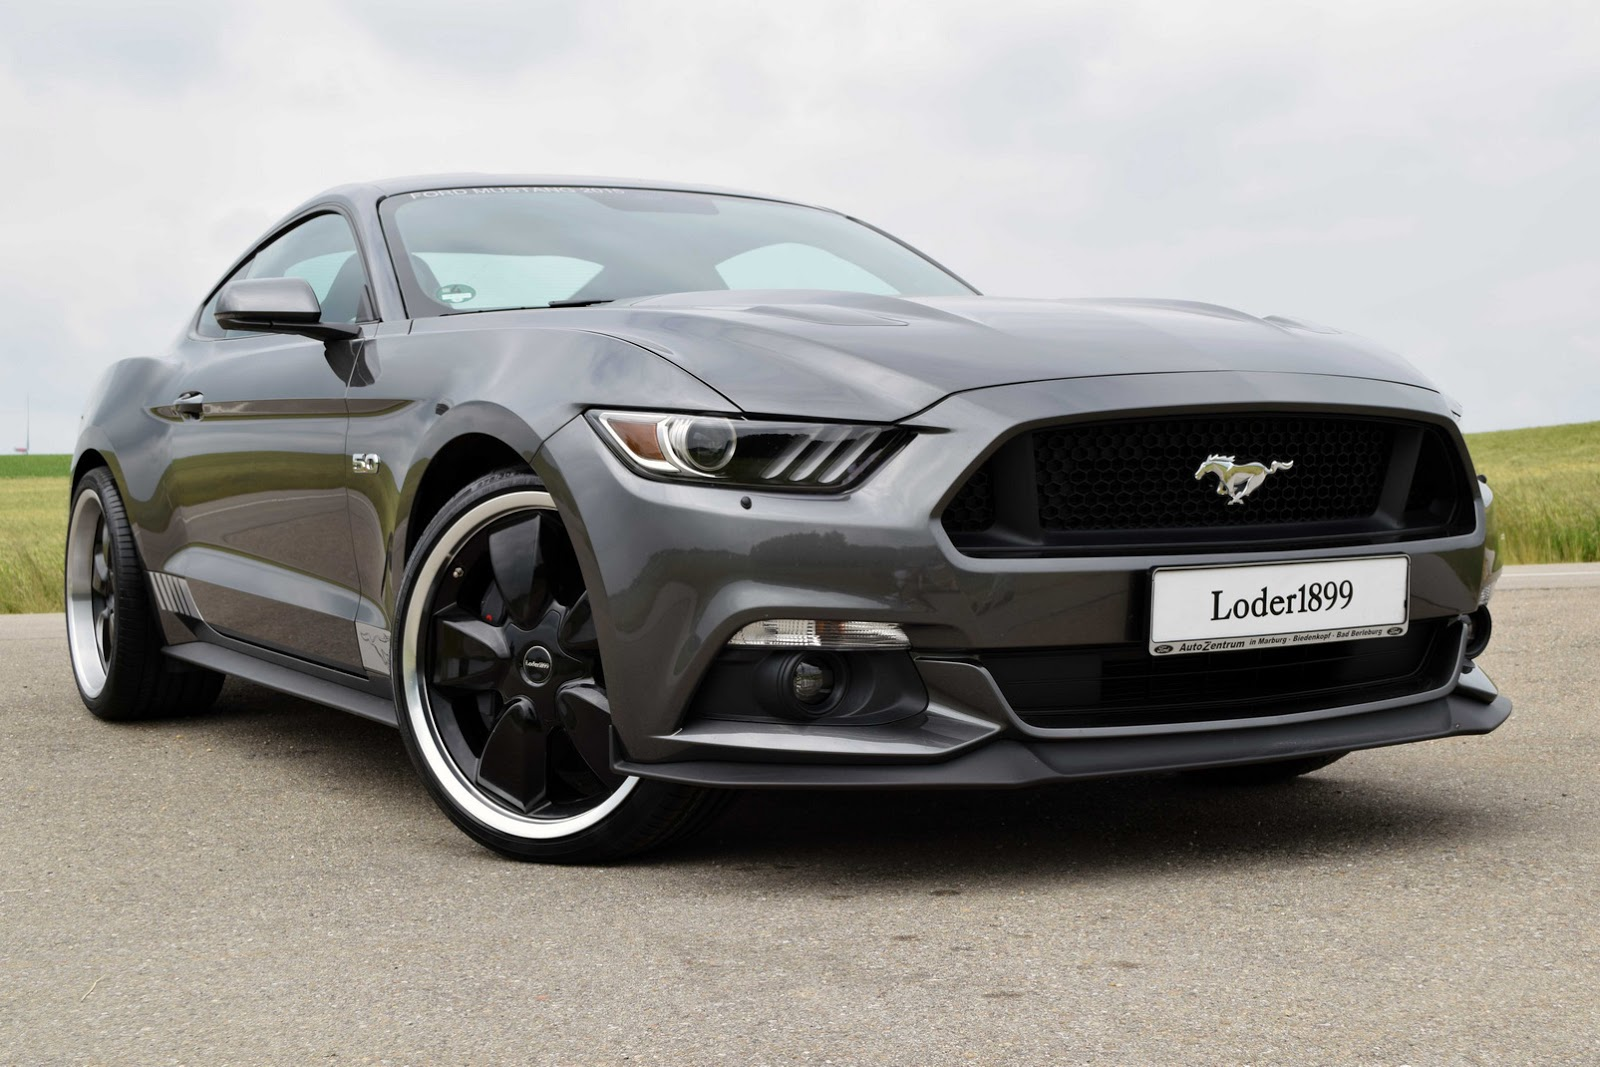 loder1899 kicks off 2015 ford mustang tuning with new wheels. Black Bedroom Furniture Sets. Home Design Ideas